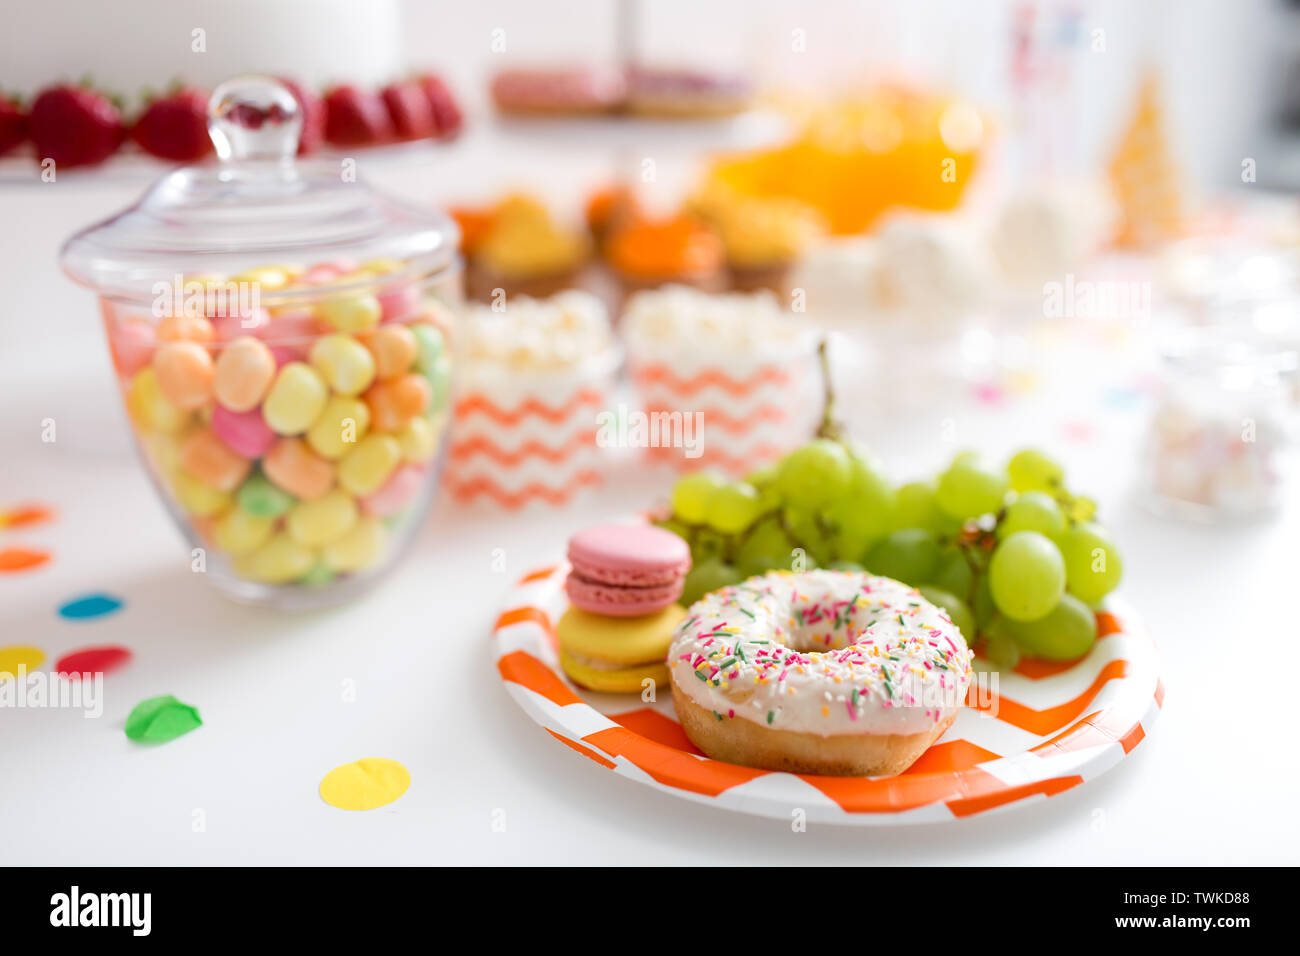 grapes, macarons and donut on party table - Stock Image